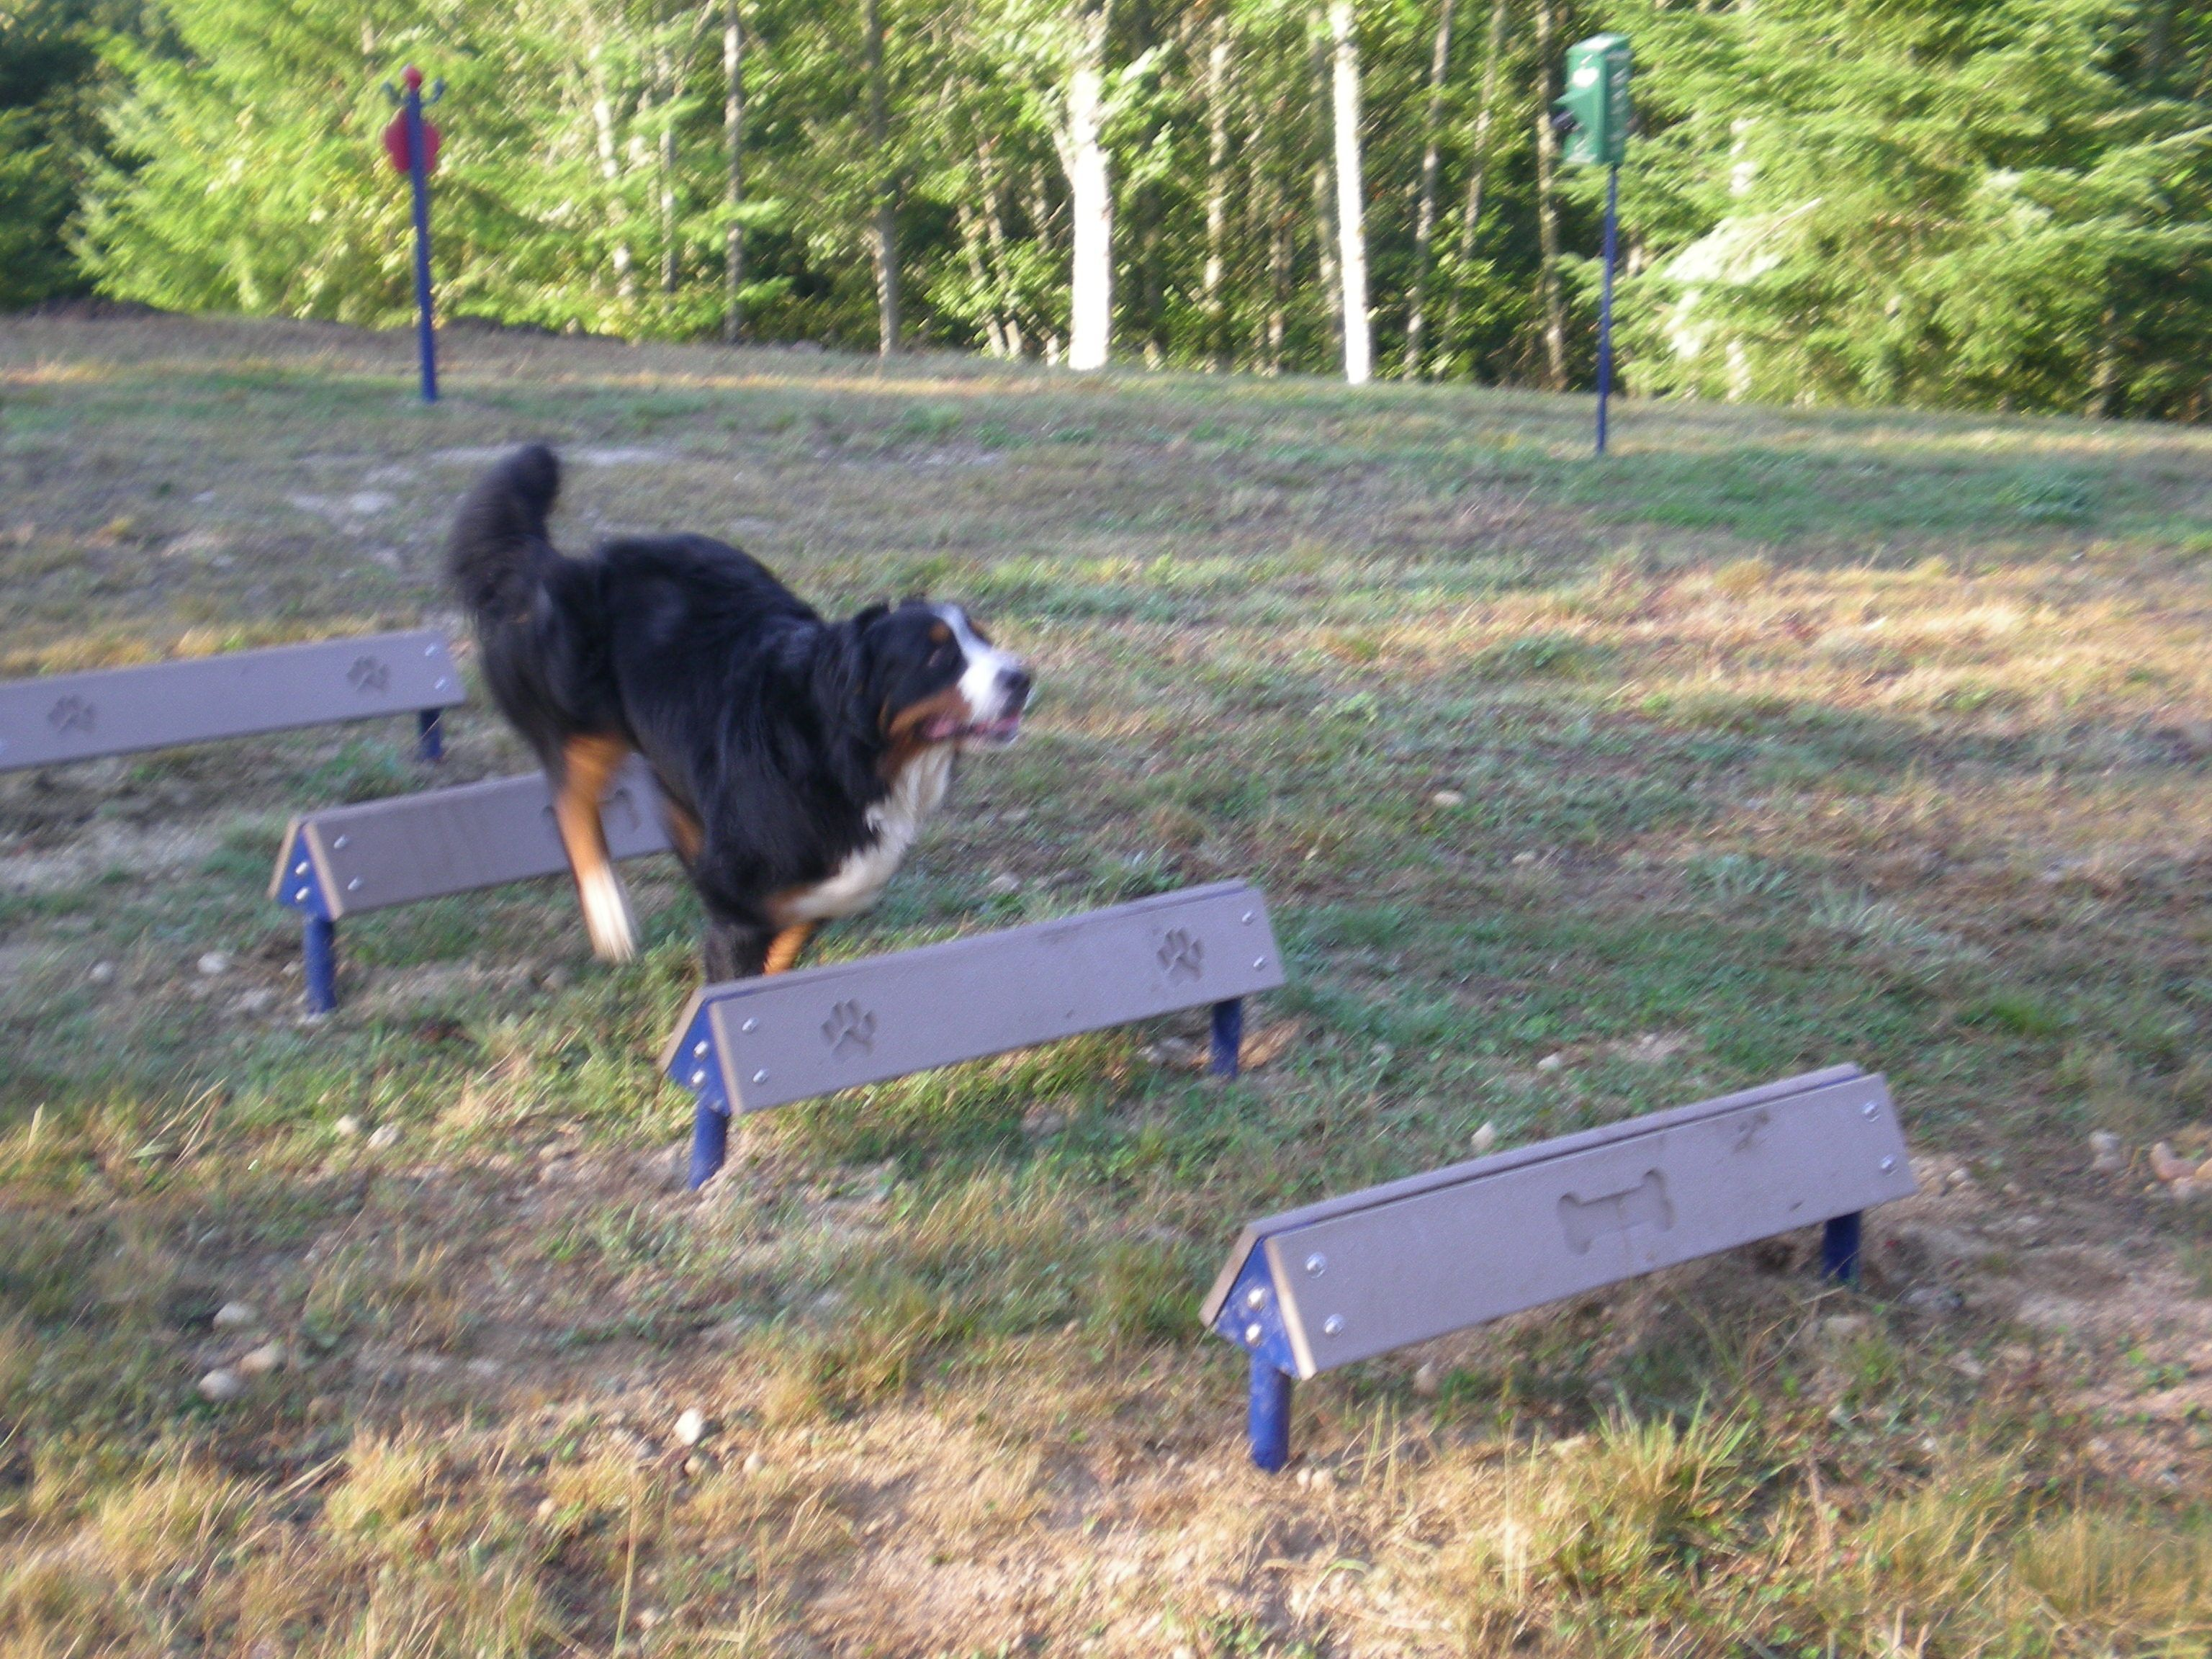 Hound Hurdles  With engraved bone and paw graphics for aided depth perception these are a fun way to spruce up your dog park or play area resort in the gardens